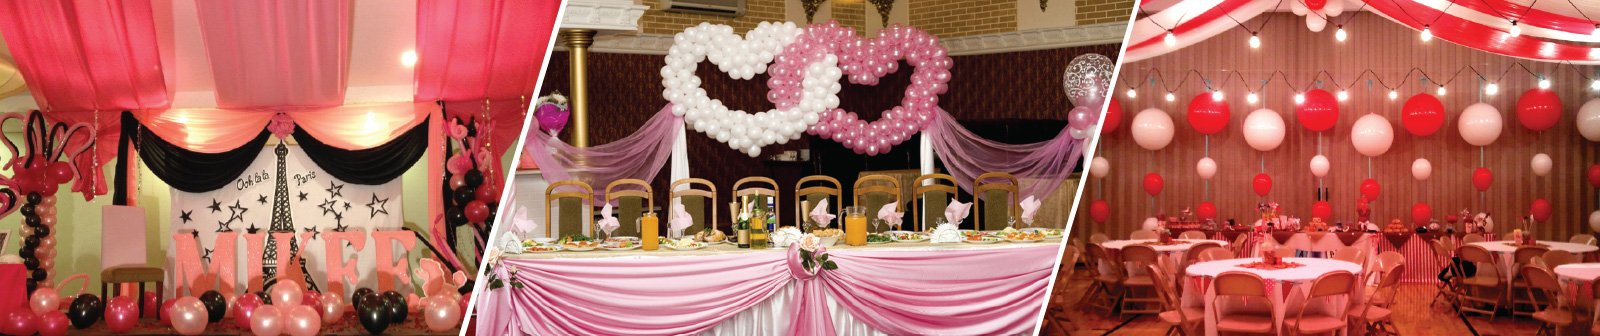 Top Balloon Decorators in Mumbai